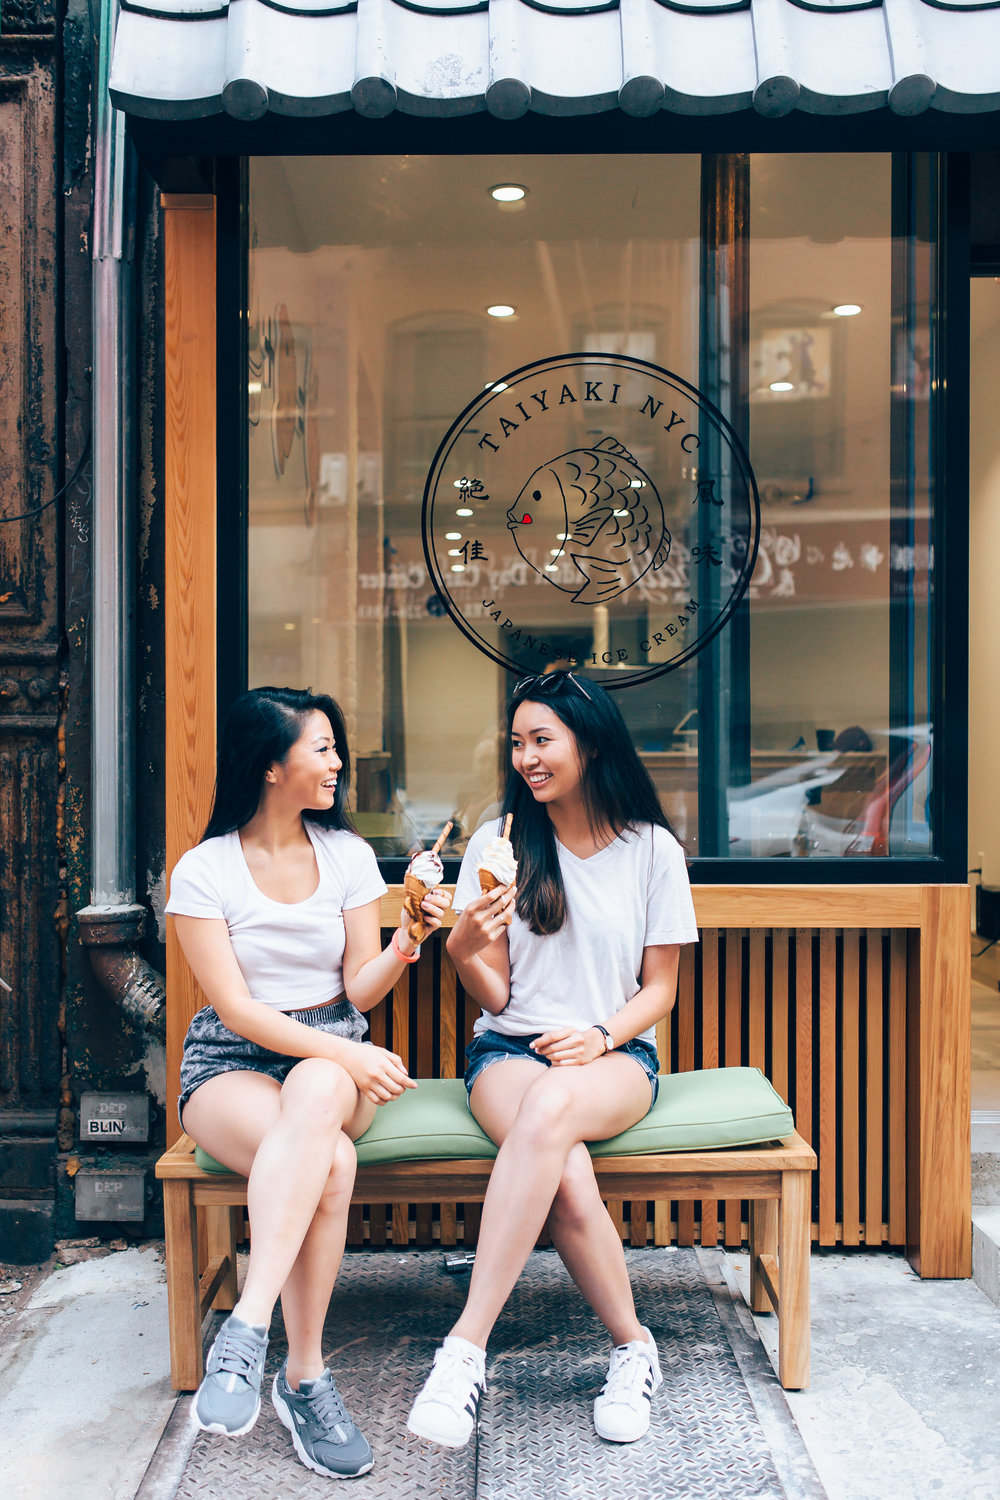 Elena (left) and Karen (right) enjoying some Taiyaki Ice Cream pre-opening.